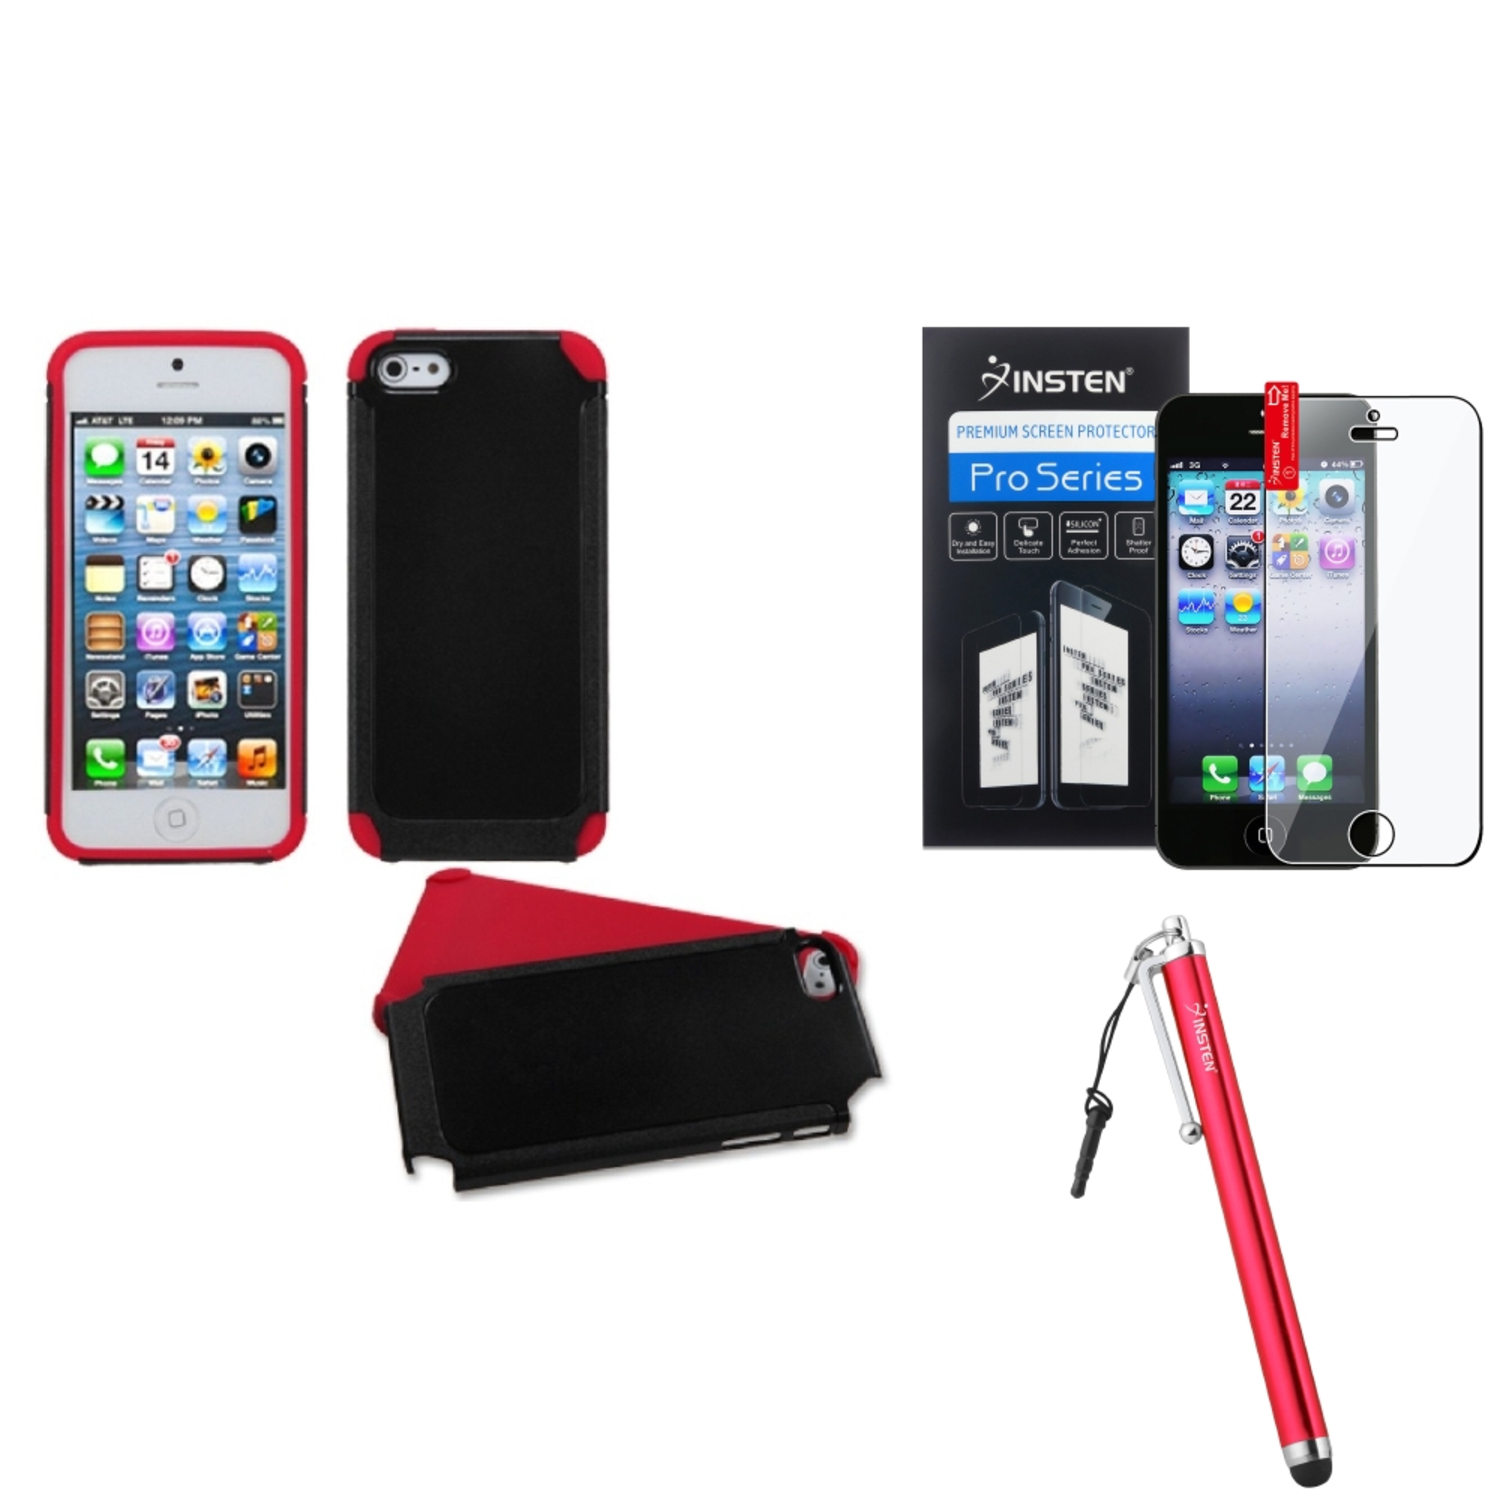 Insten Black/Red Frosted Fusion Case For iPhone SE 5S 5 + Stylus + Protector